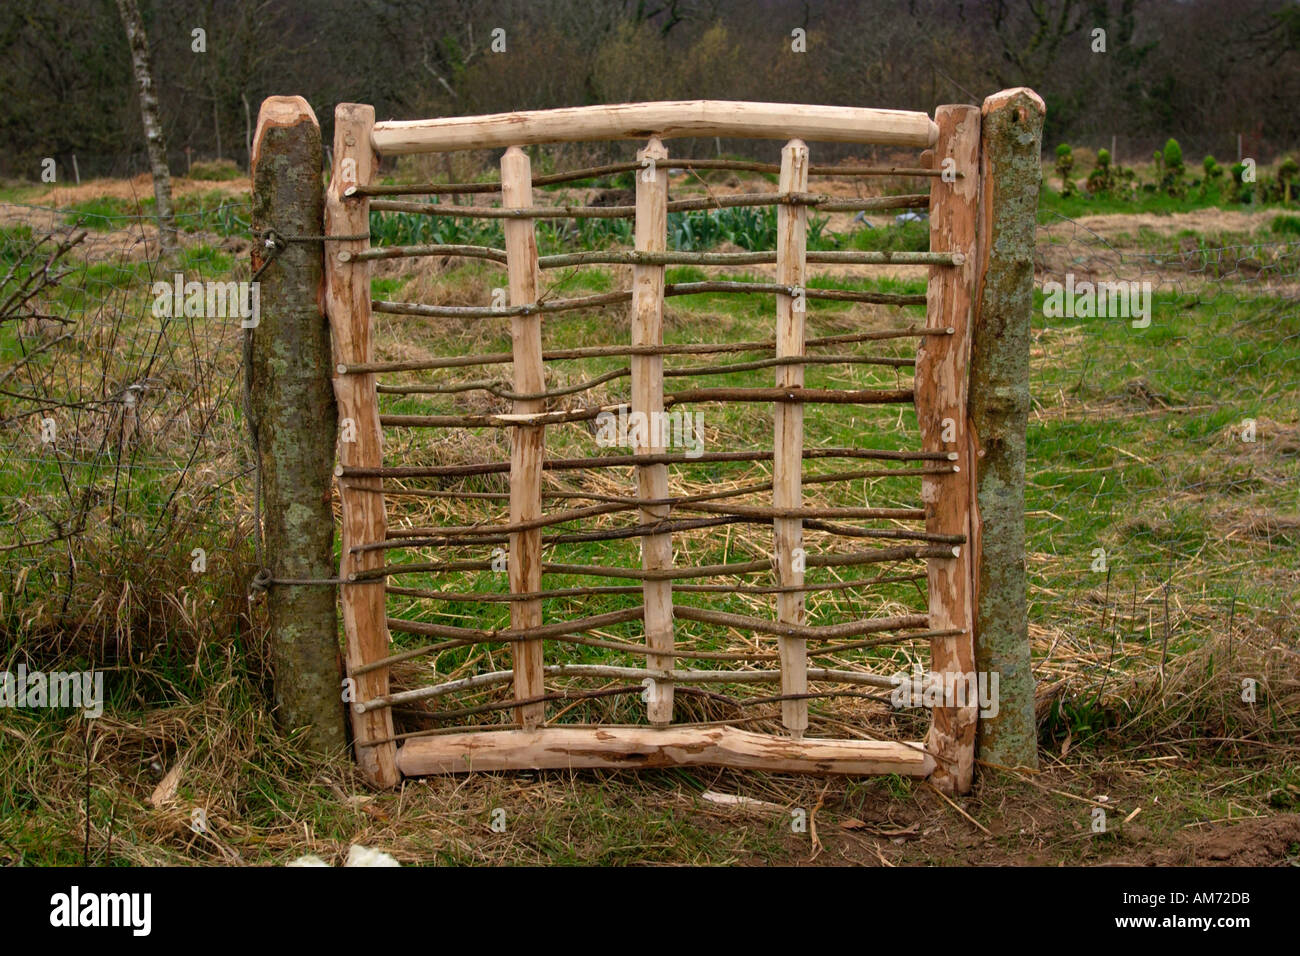 Rustic Hand Made Gate To Vegetable Garden In Eco Village Of Brithdir Mawr Near Newport Pembrokeshire